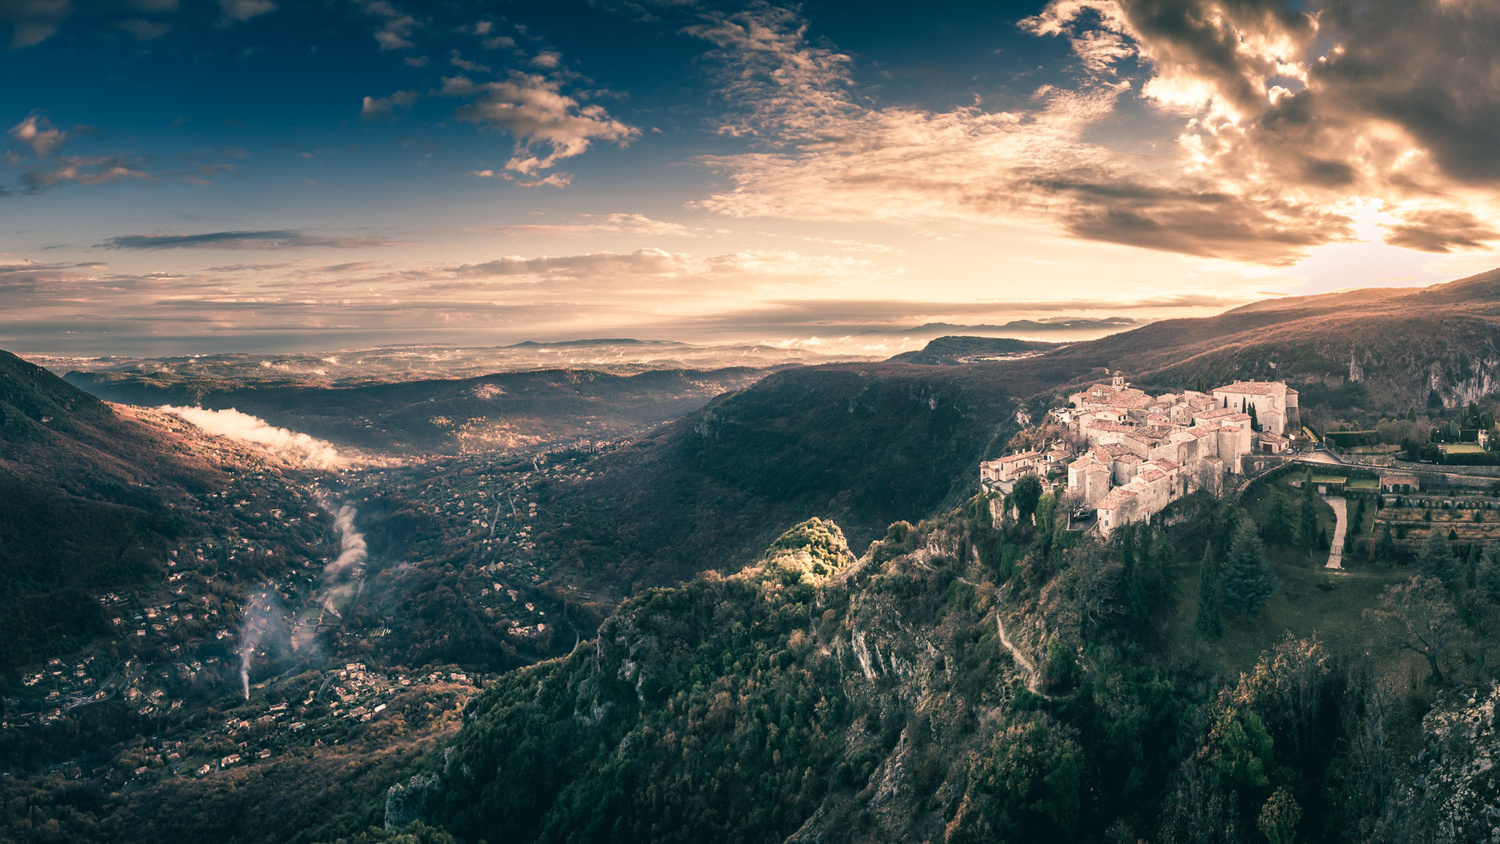 French Riviera just after a storm by Denis Degioanni